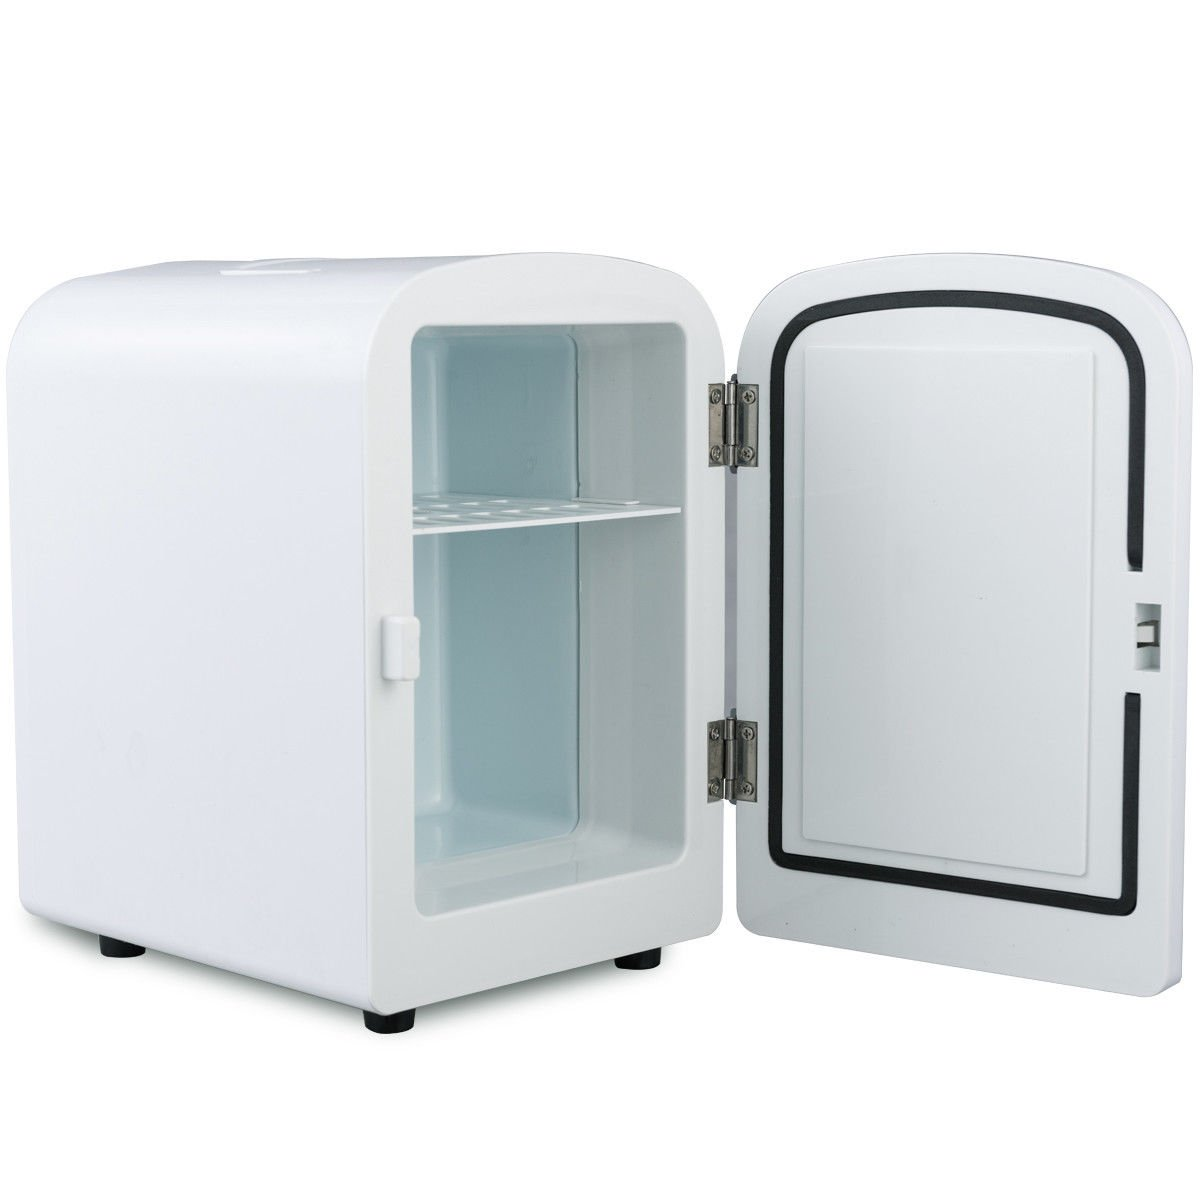 Giantex 4L Mini Fridge Portable Cooler and Warmer Auto Car Boat Home Office AC & DC (White) by Giantex (Image #4)